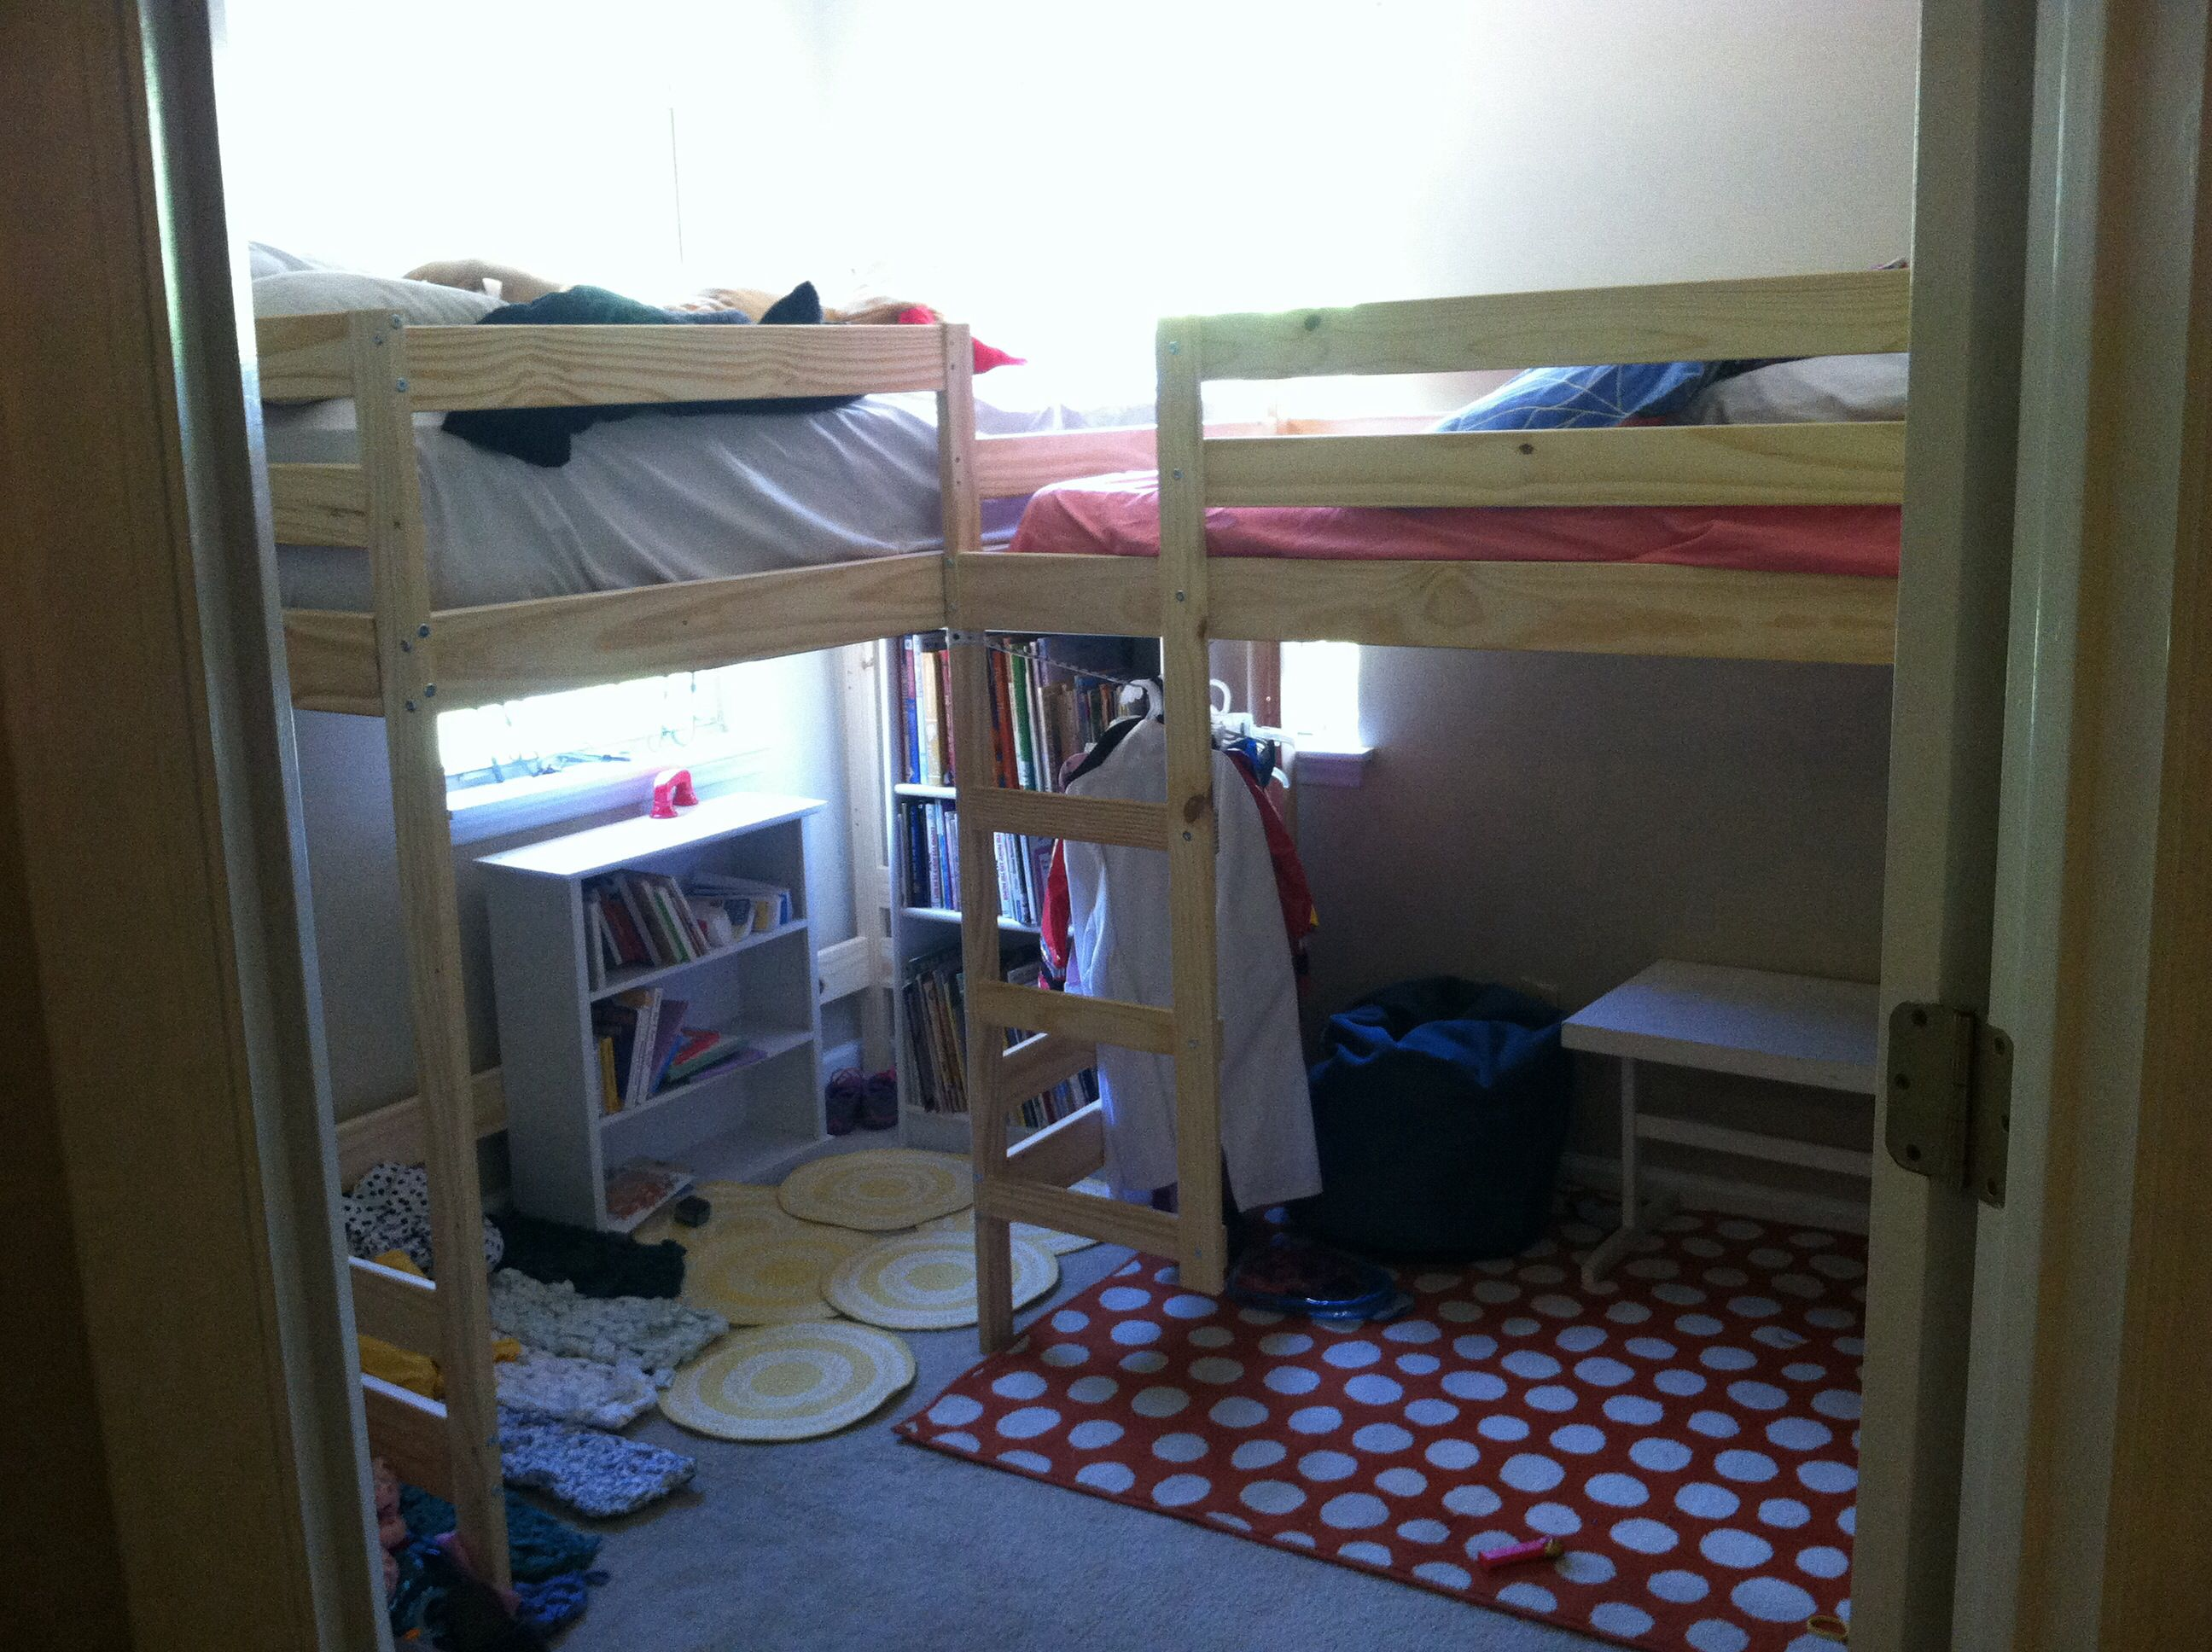 We did an Ikea Hack and turned Mydal bunk beds into L